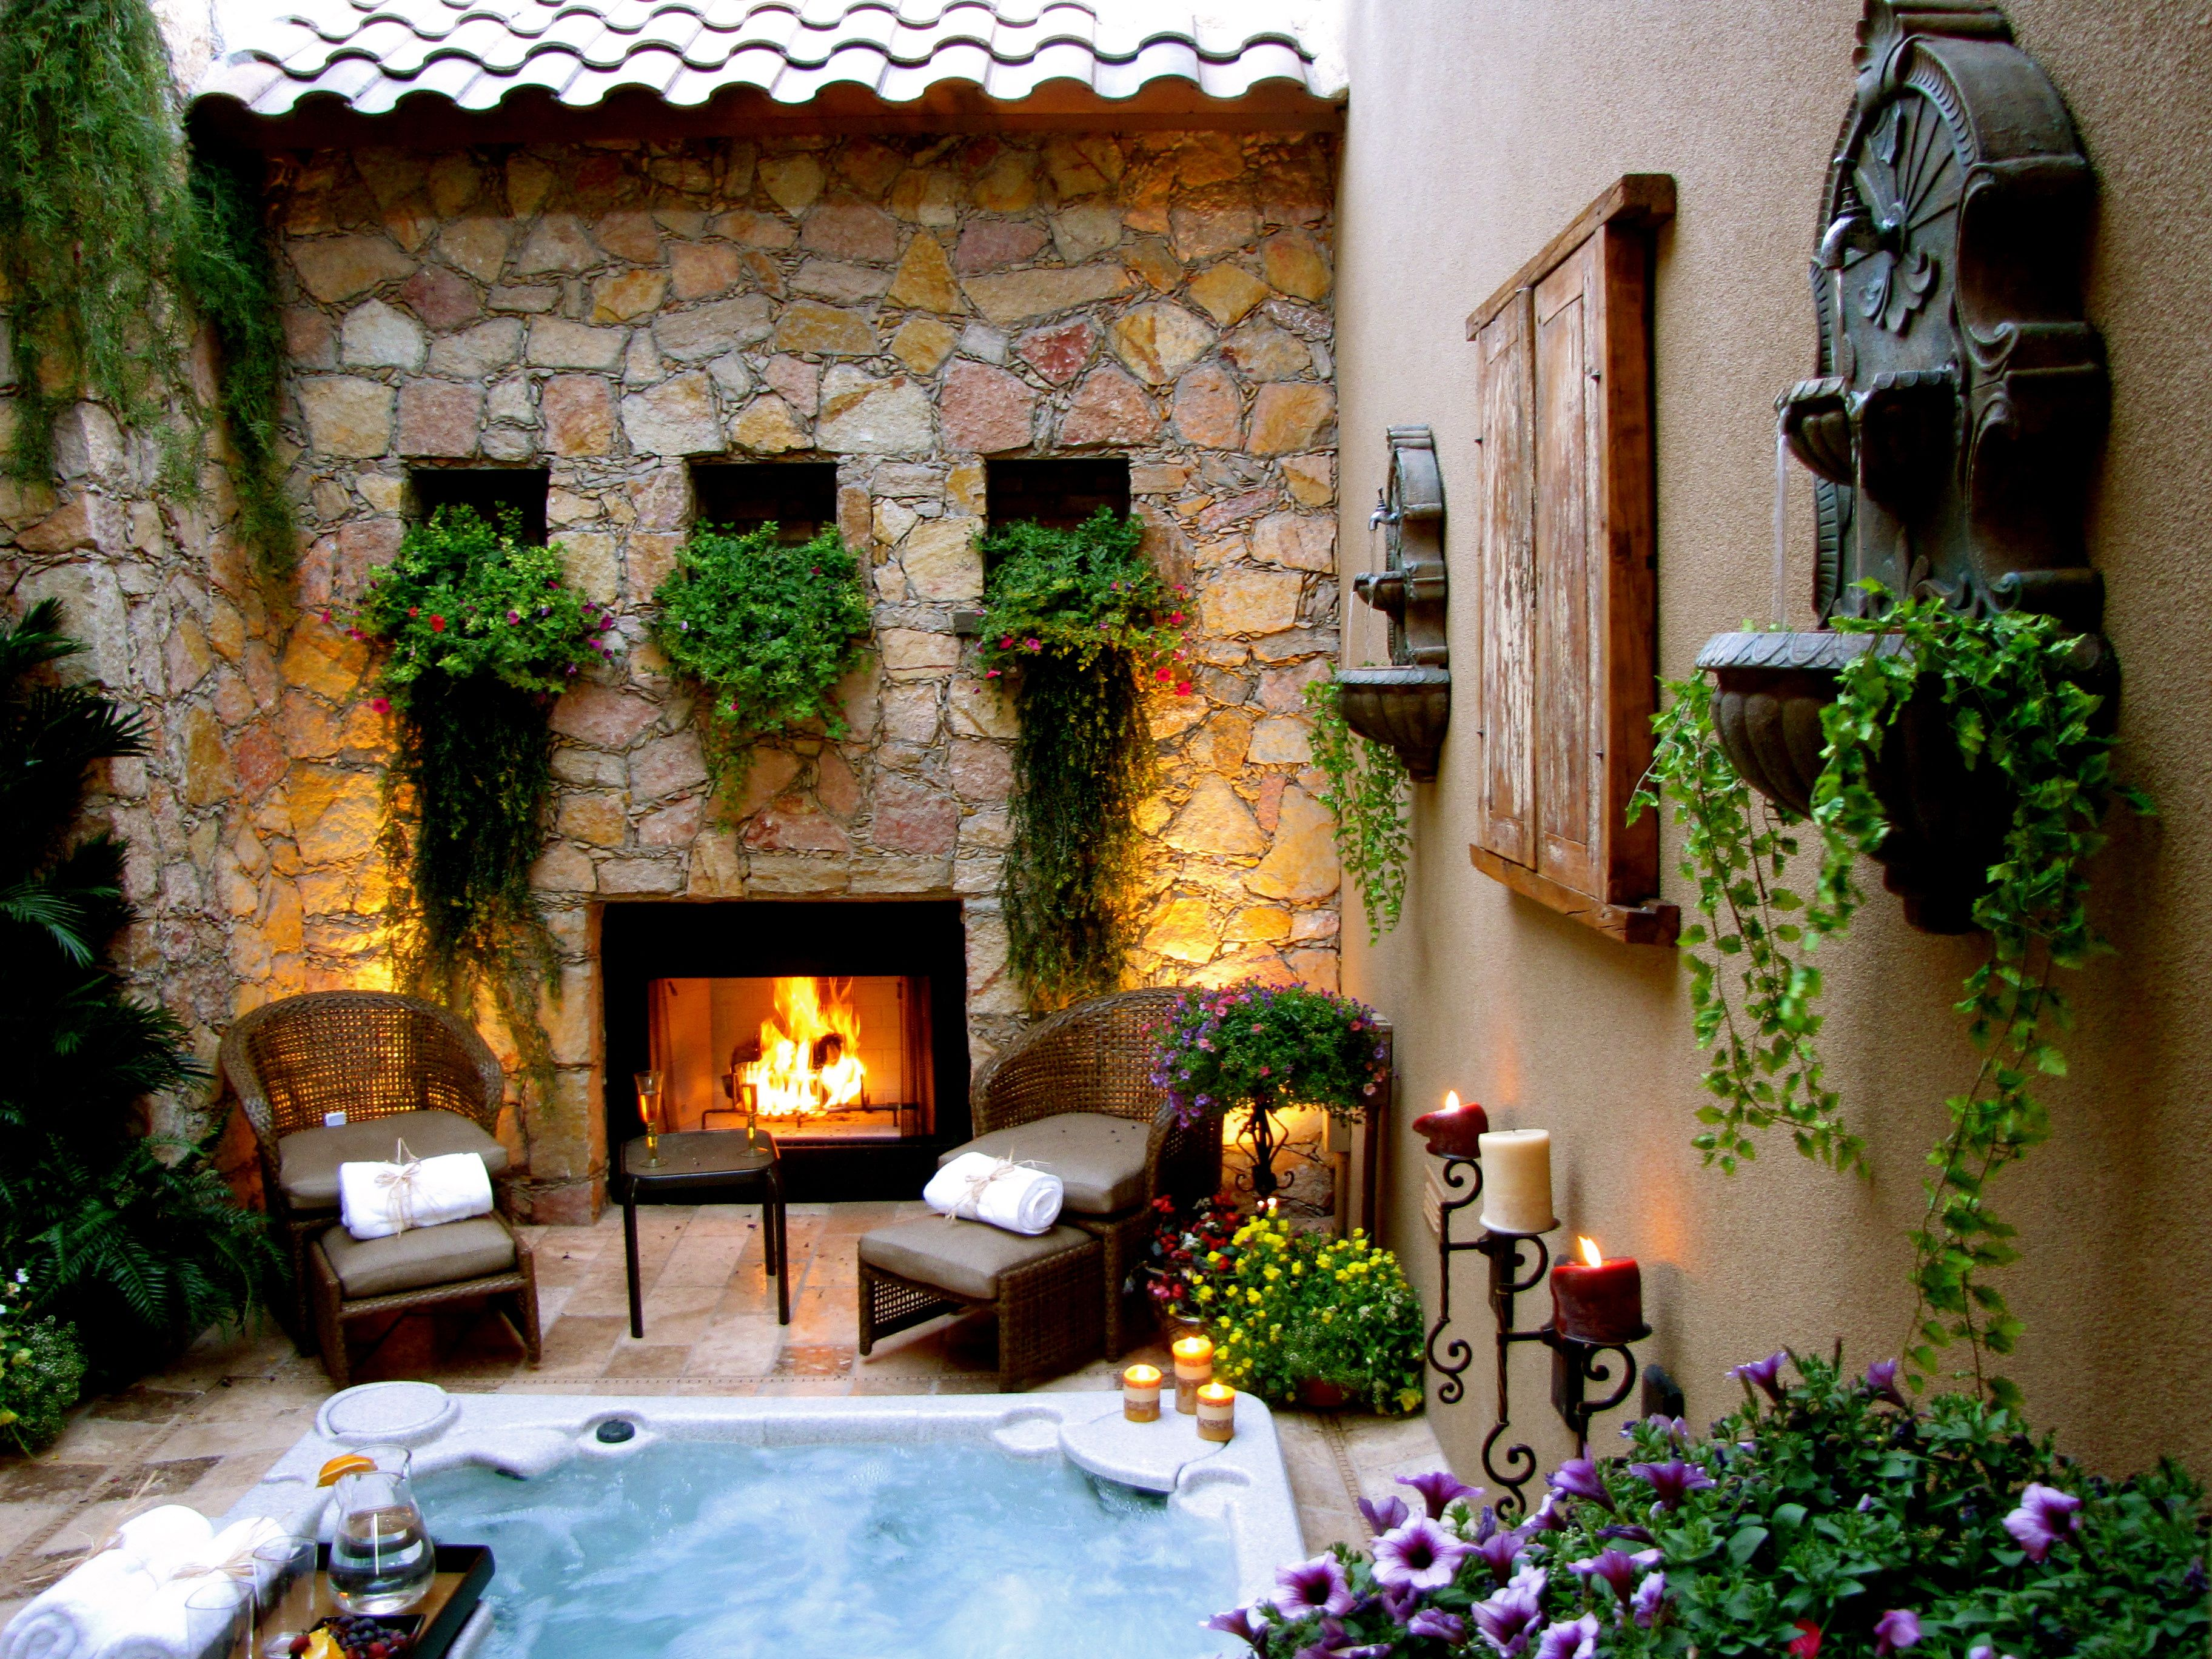 Open Air Courtyard With Hot Tub In Center And Fireplace